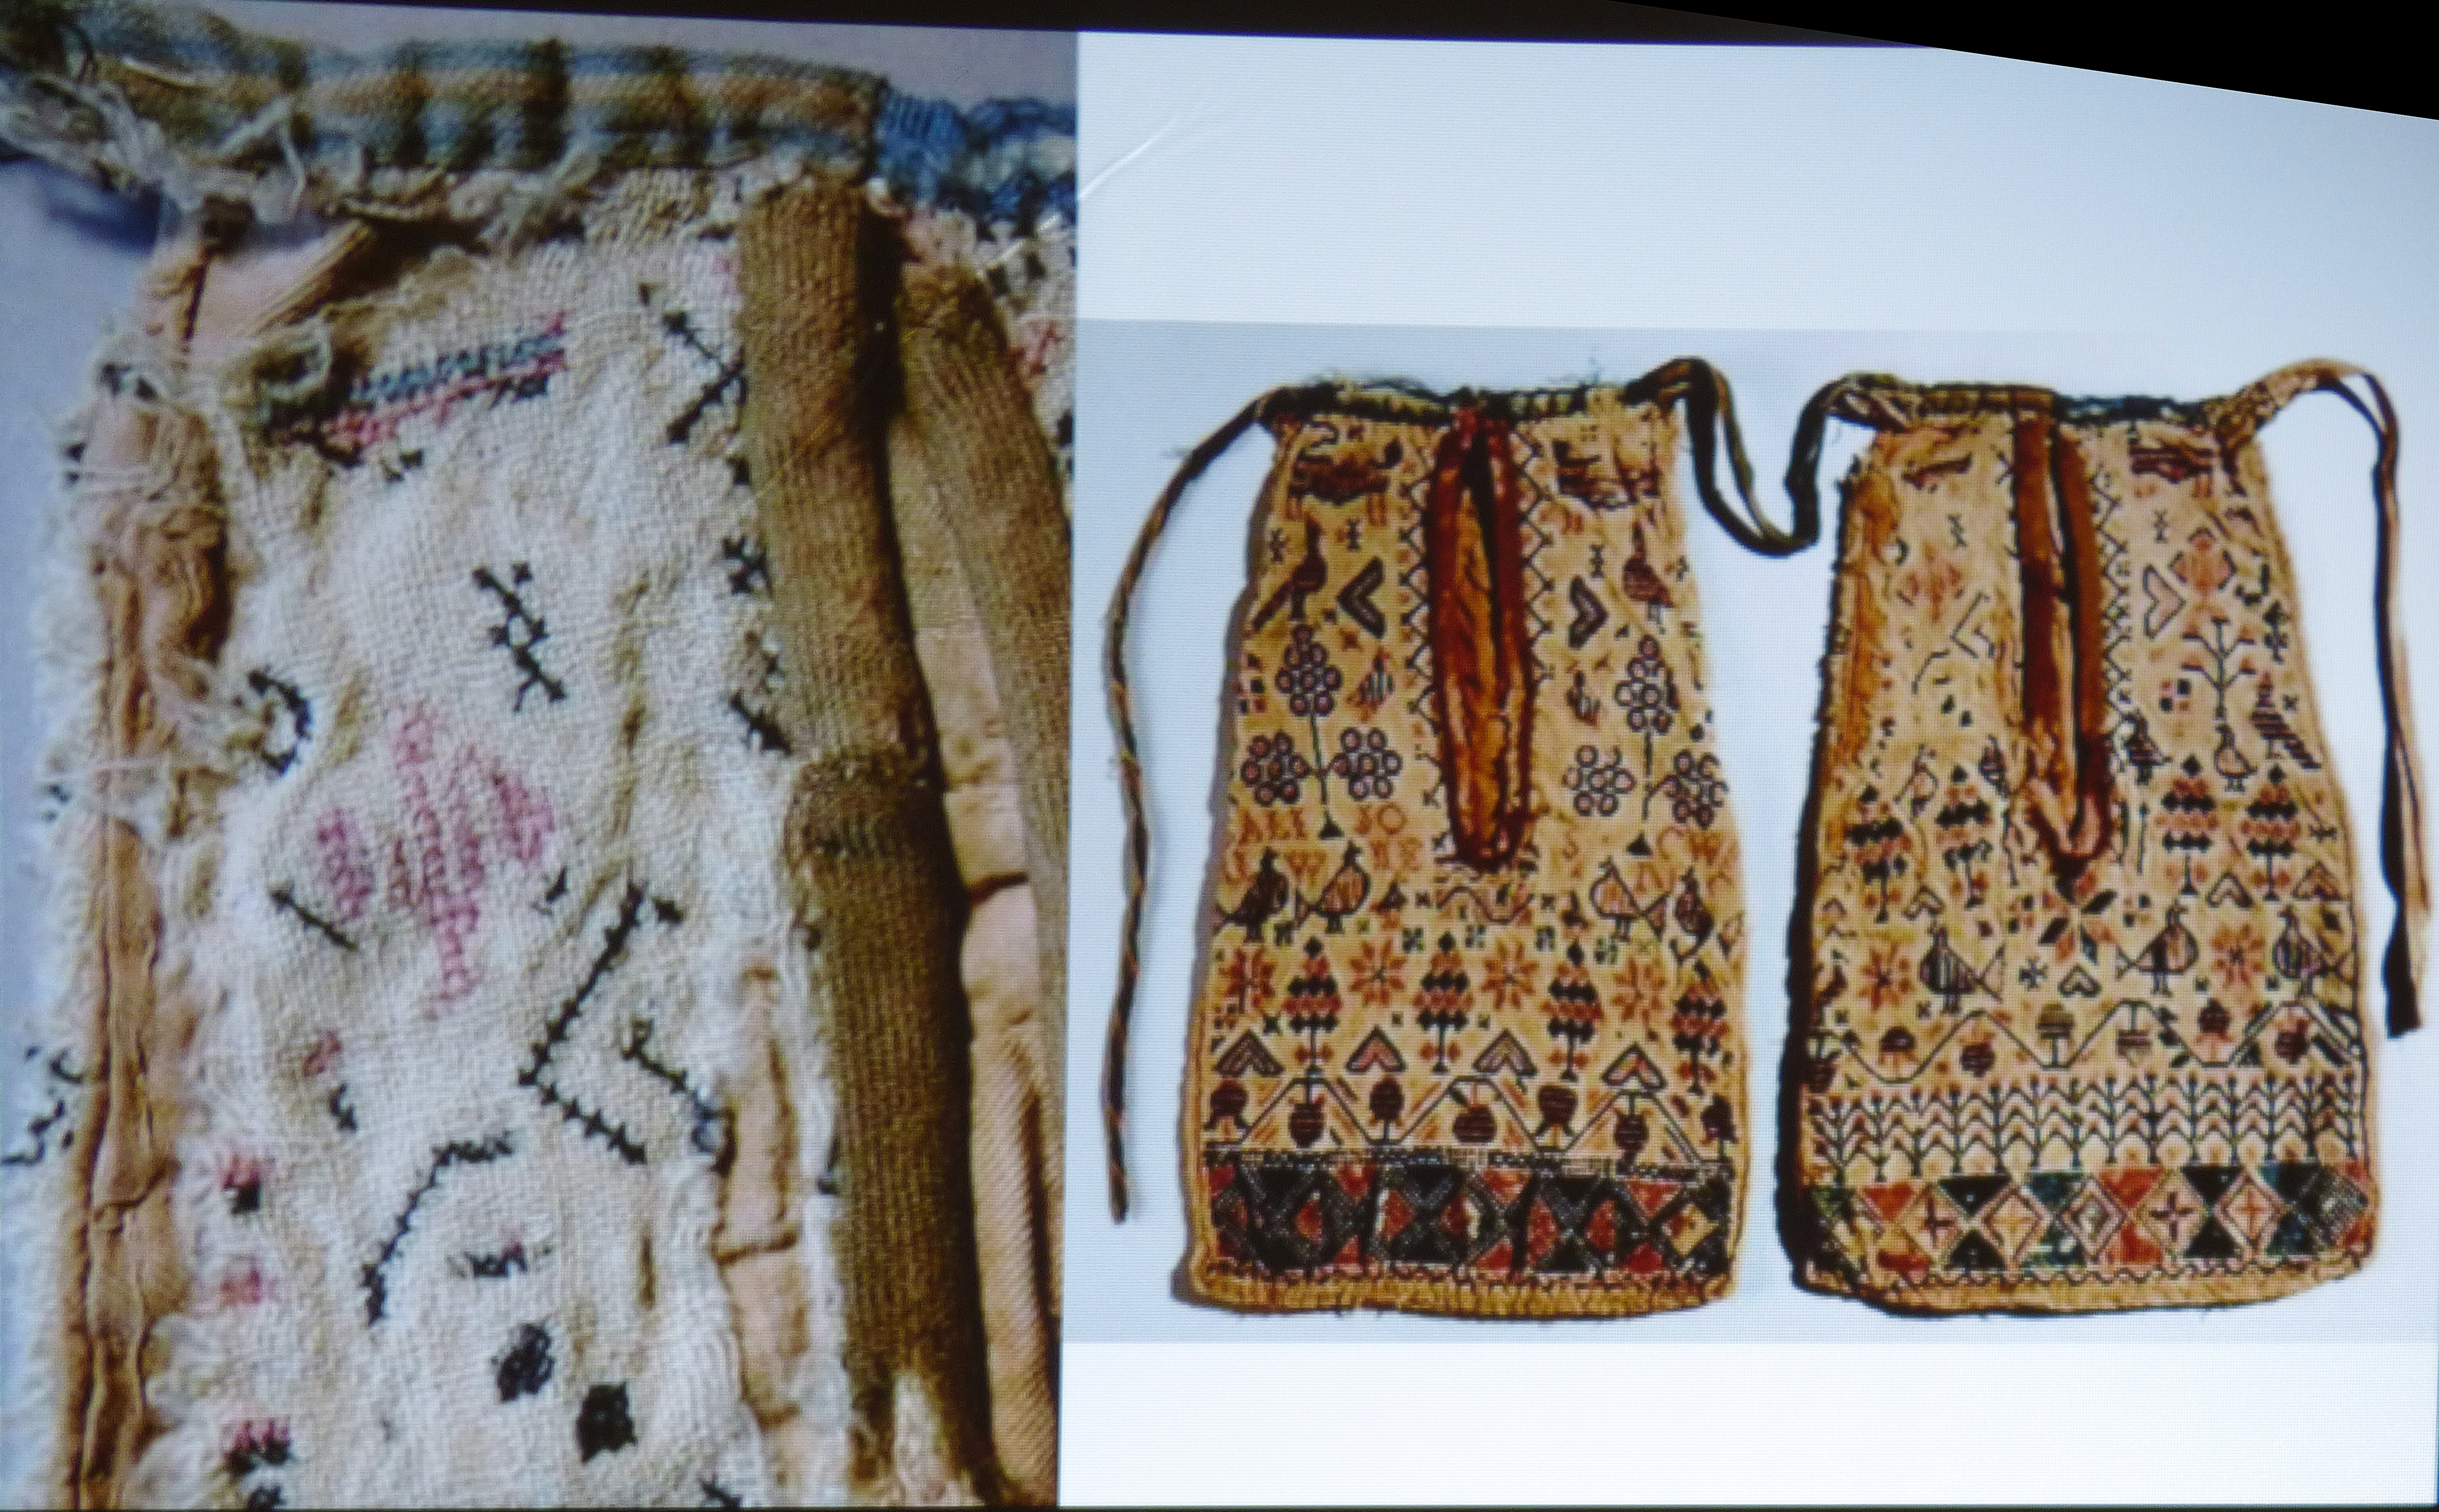 slide showing Elizabethan pockets which were an influence on Hanna Robert's work